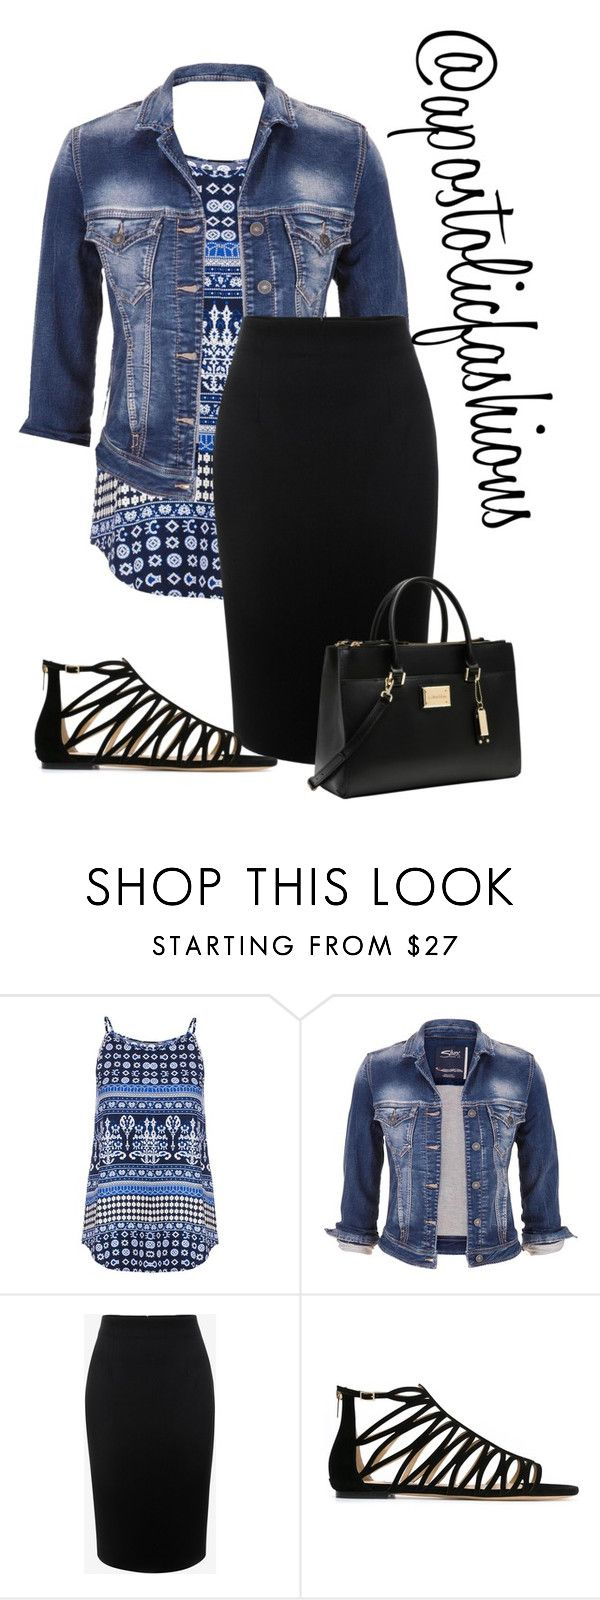 """""""Apostolic Fashions #1424"""" by apostolicfashions on Polyvore featuring Dorothy Perkins, maurices, Alexander McQueen, Jimmy Choo and Calvin Klein"""